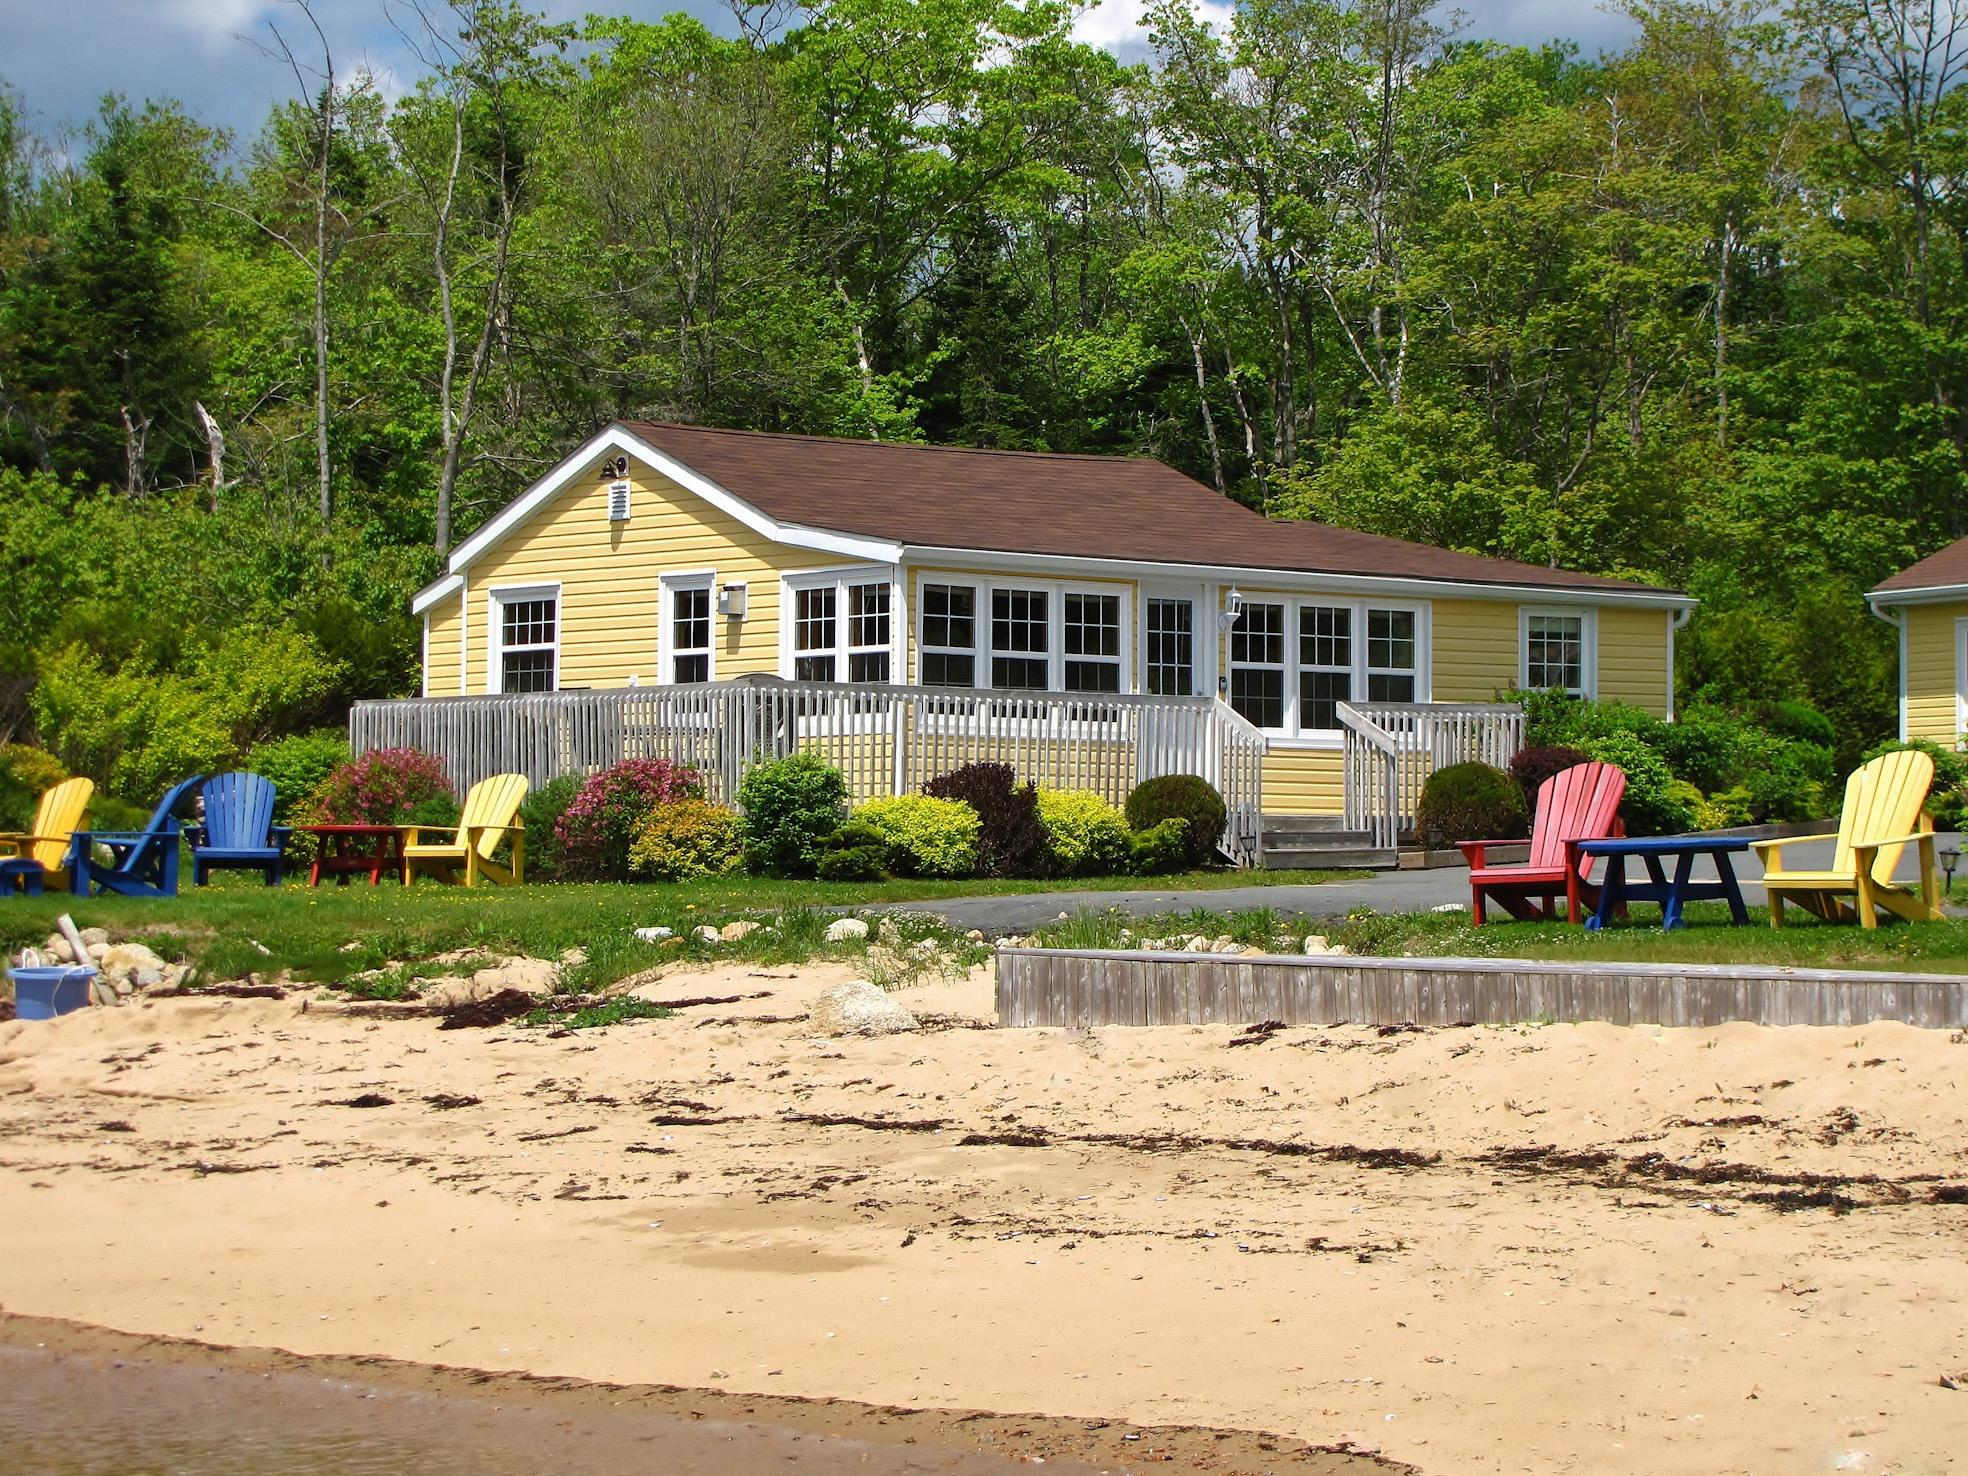 #4, Baldmoney's Boathouse-Luxury-Ocean View-Cottage-Private Bathroom